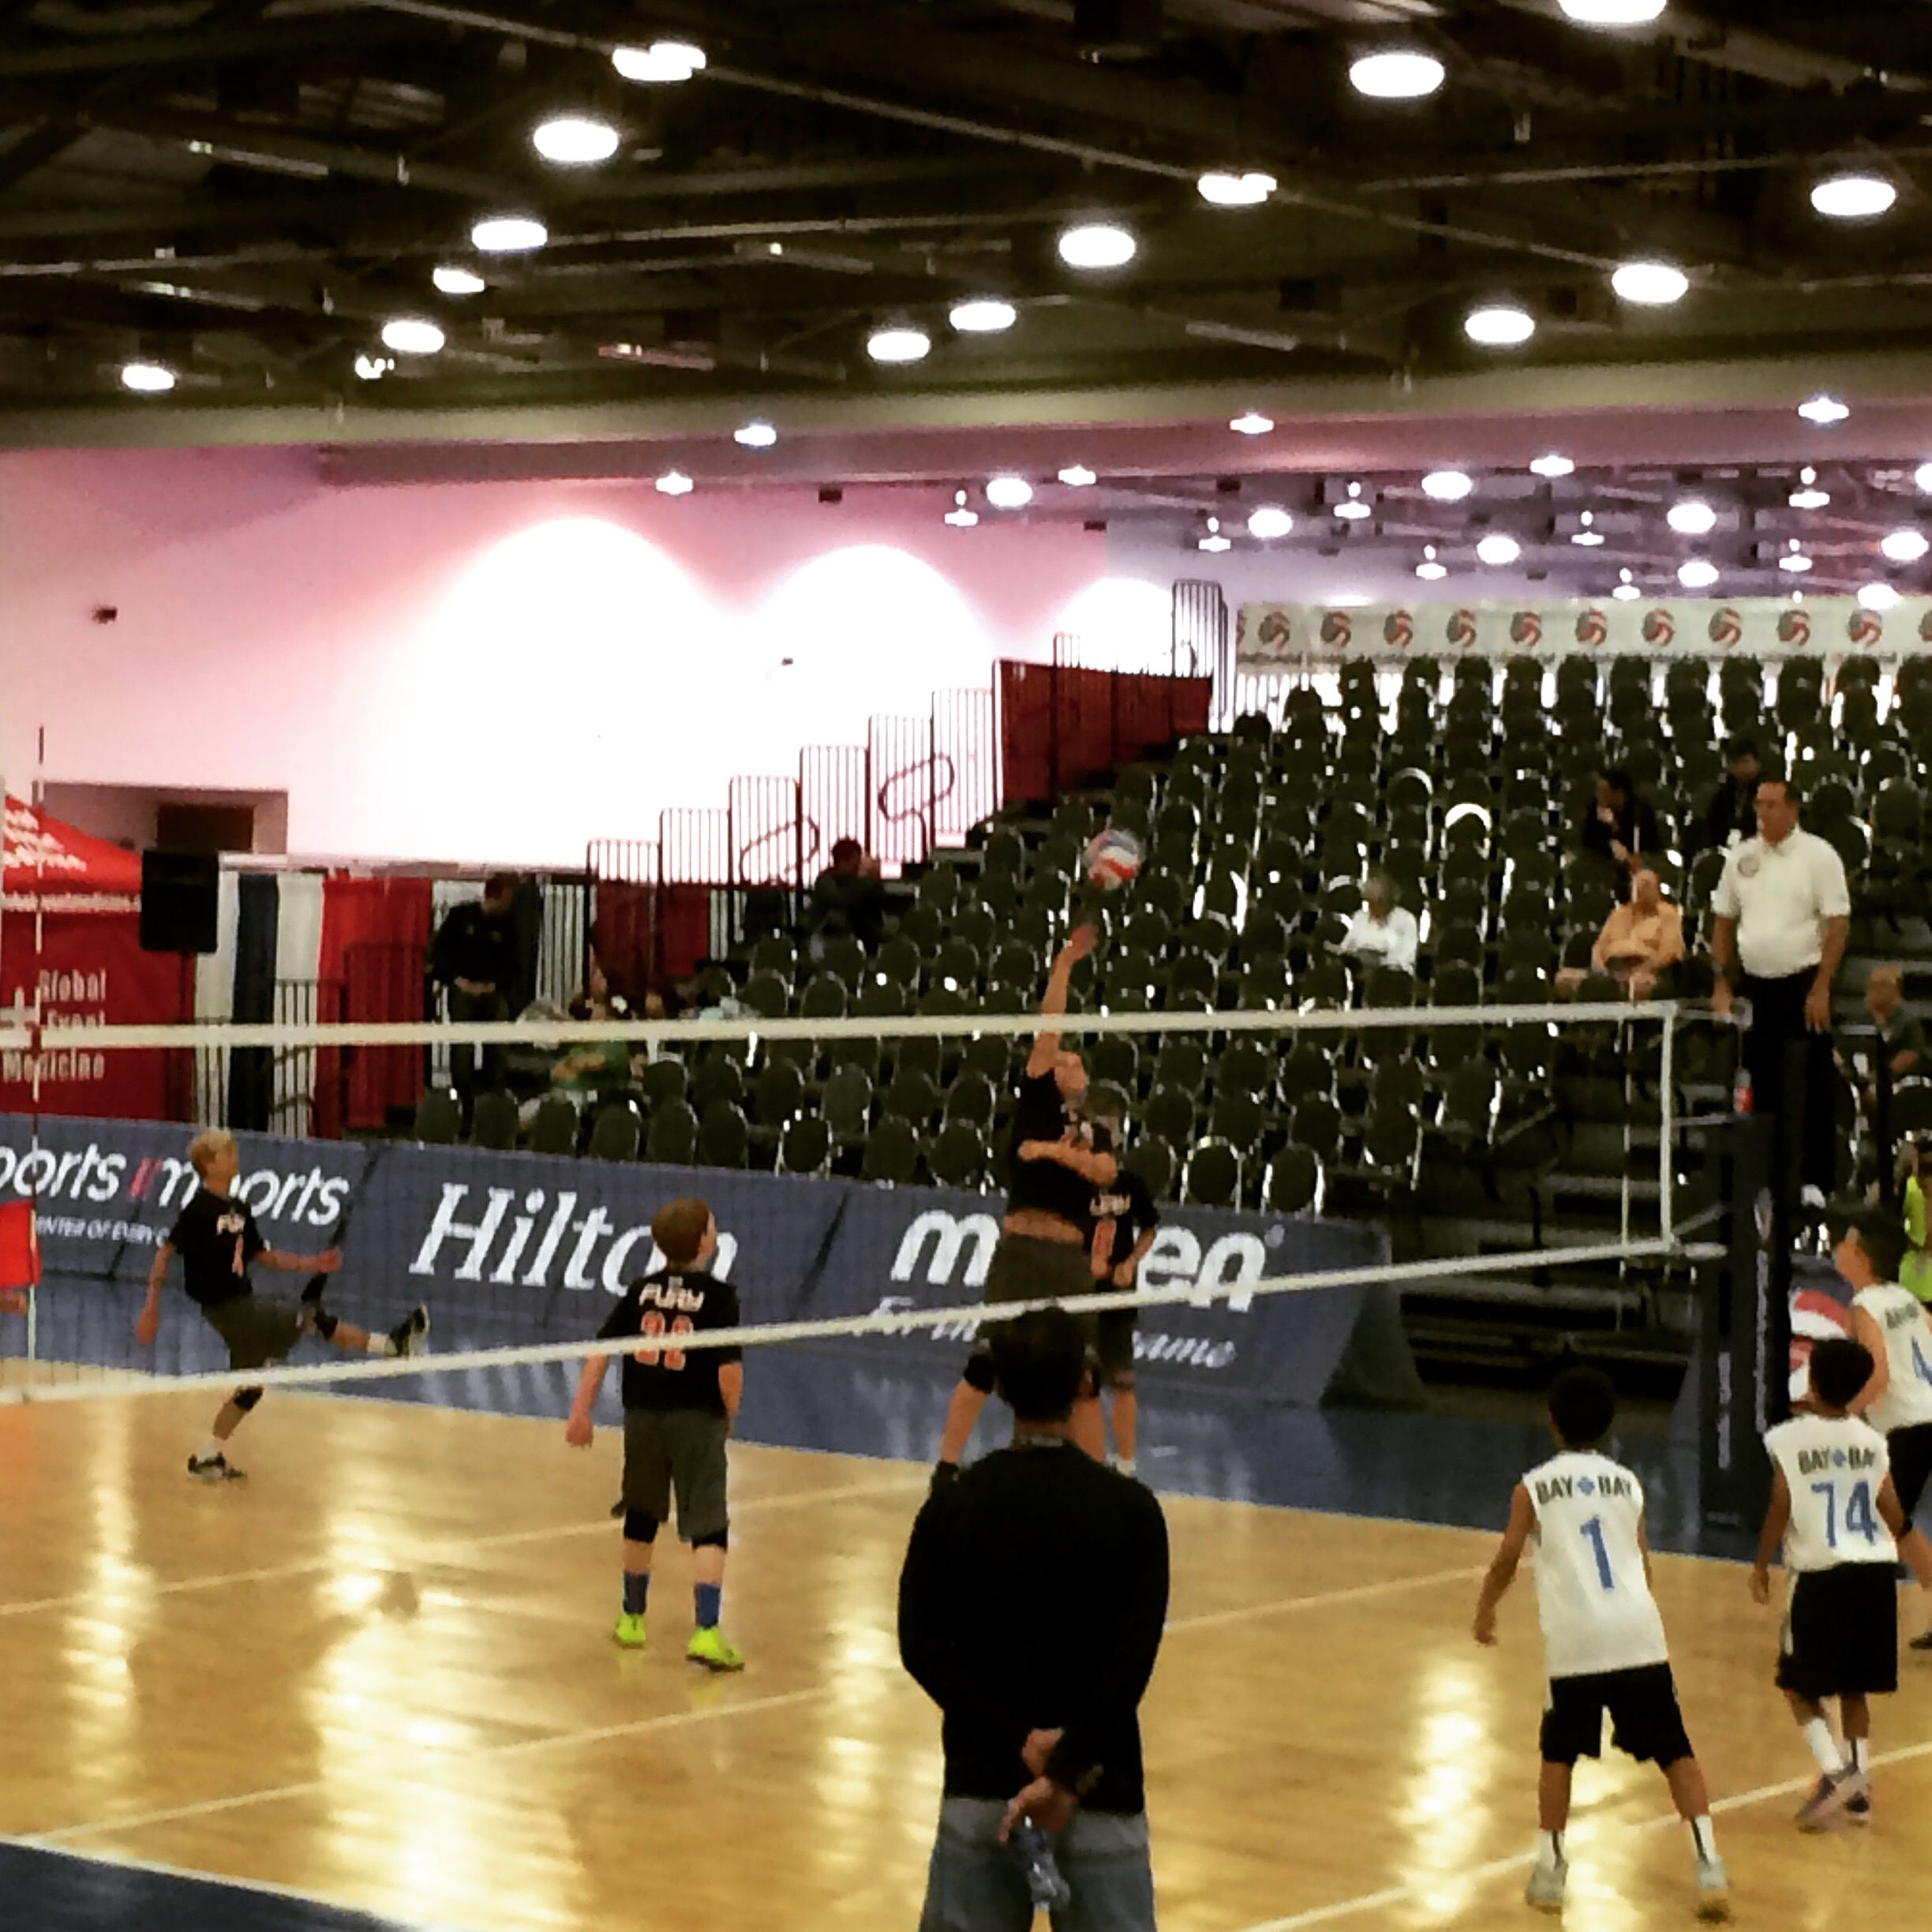 Boys Junior Nationals Volleyball Championships Columbus Ohio Volleyball Volleyball Net Volleyball Equipment